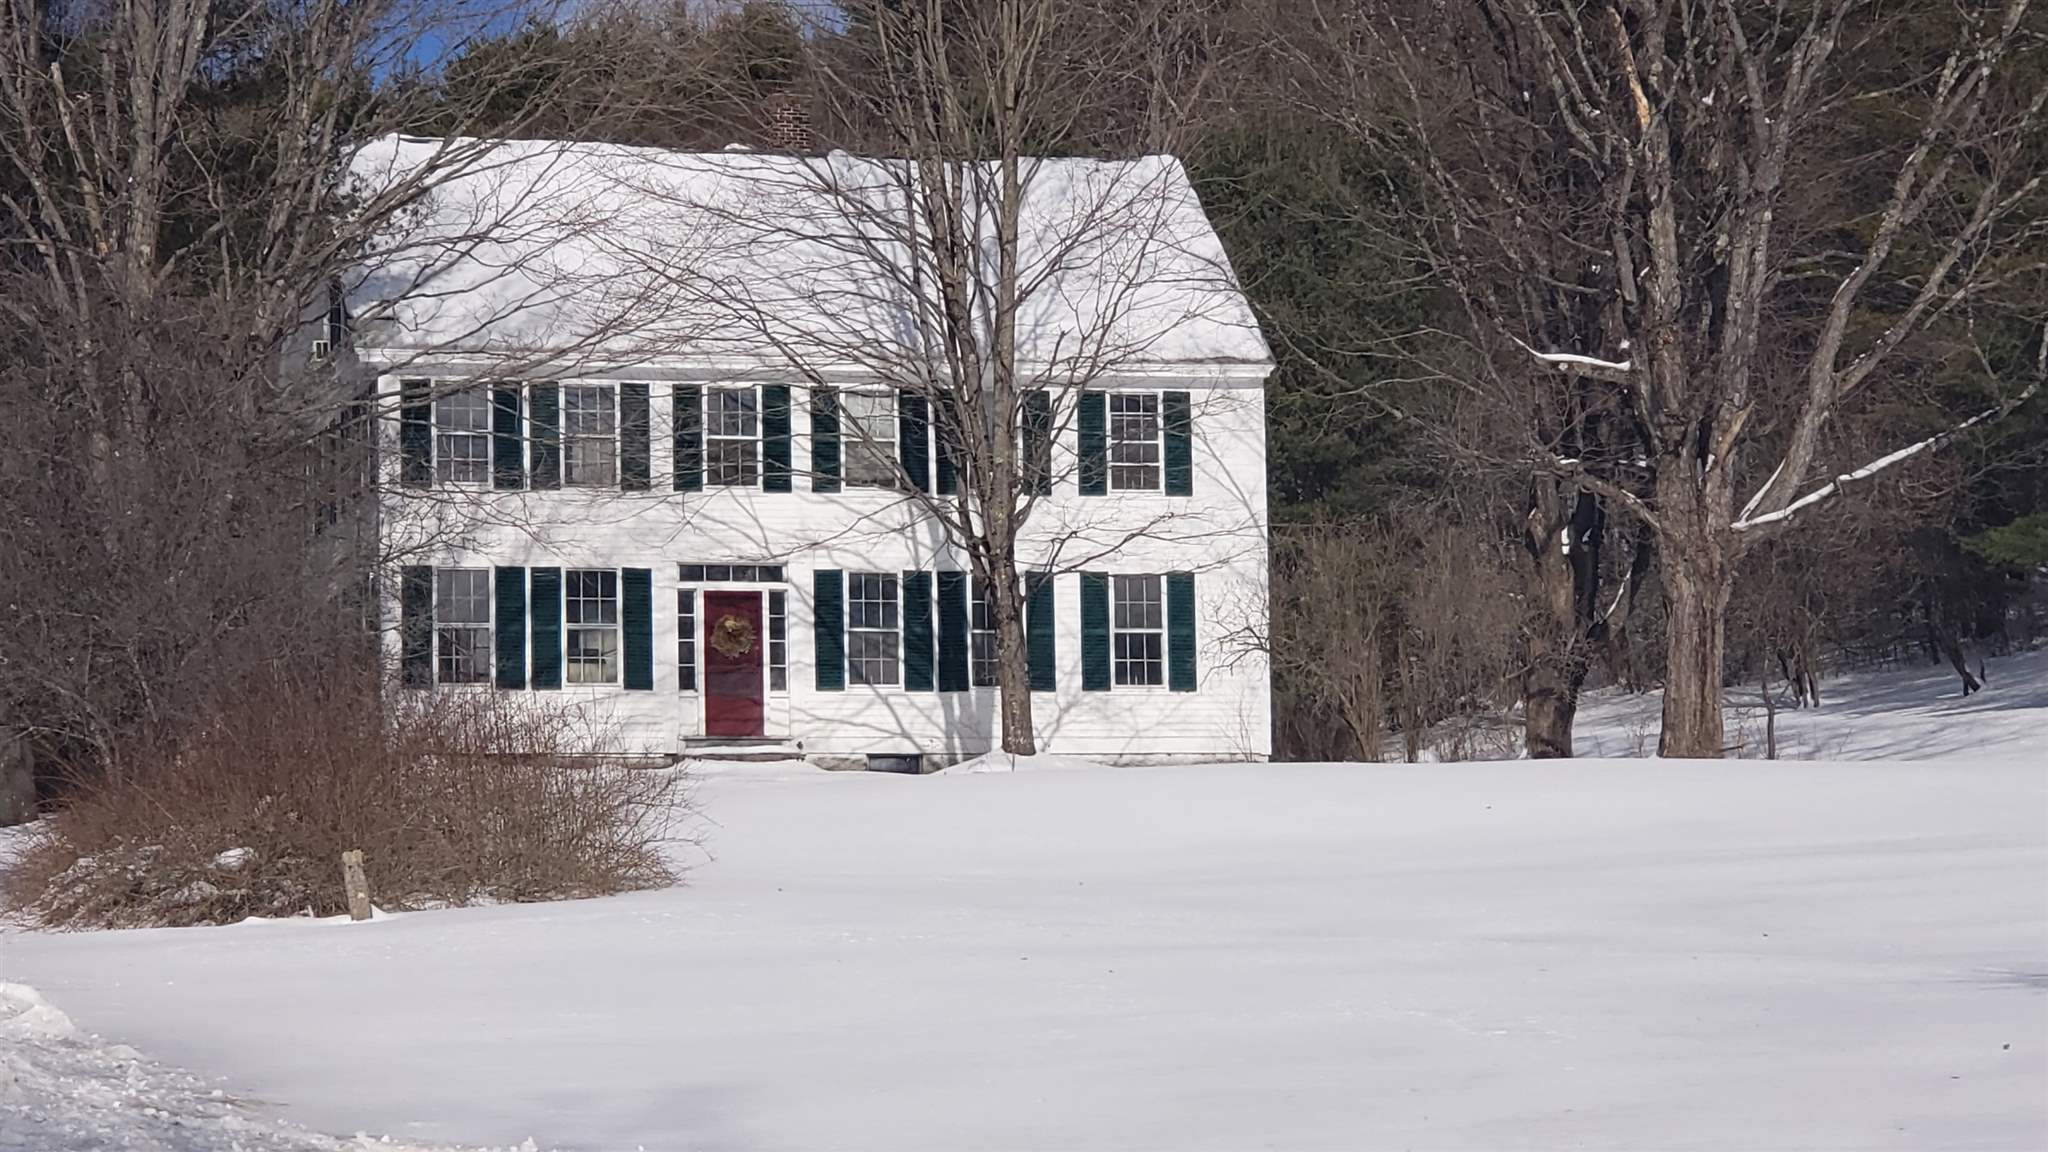 MLS 4794769: 233 Parsonage Road, Cornish NH